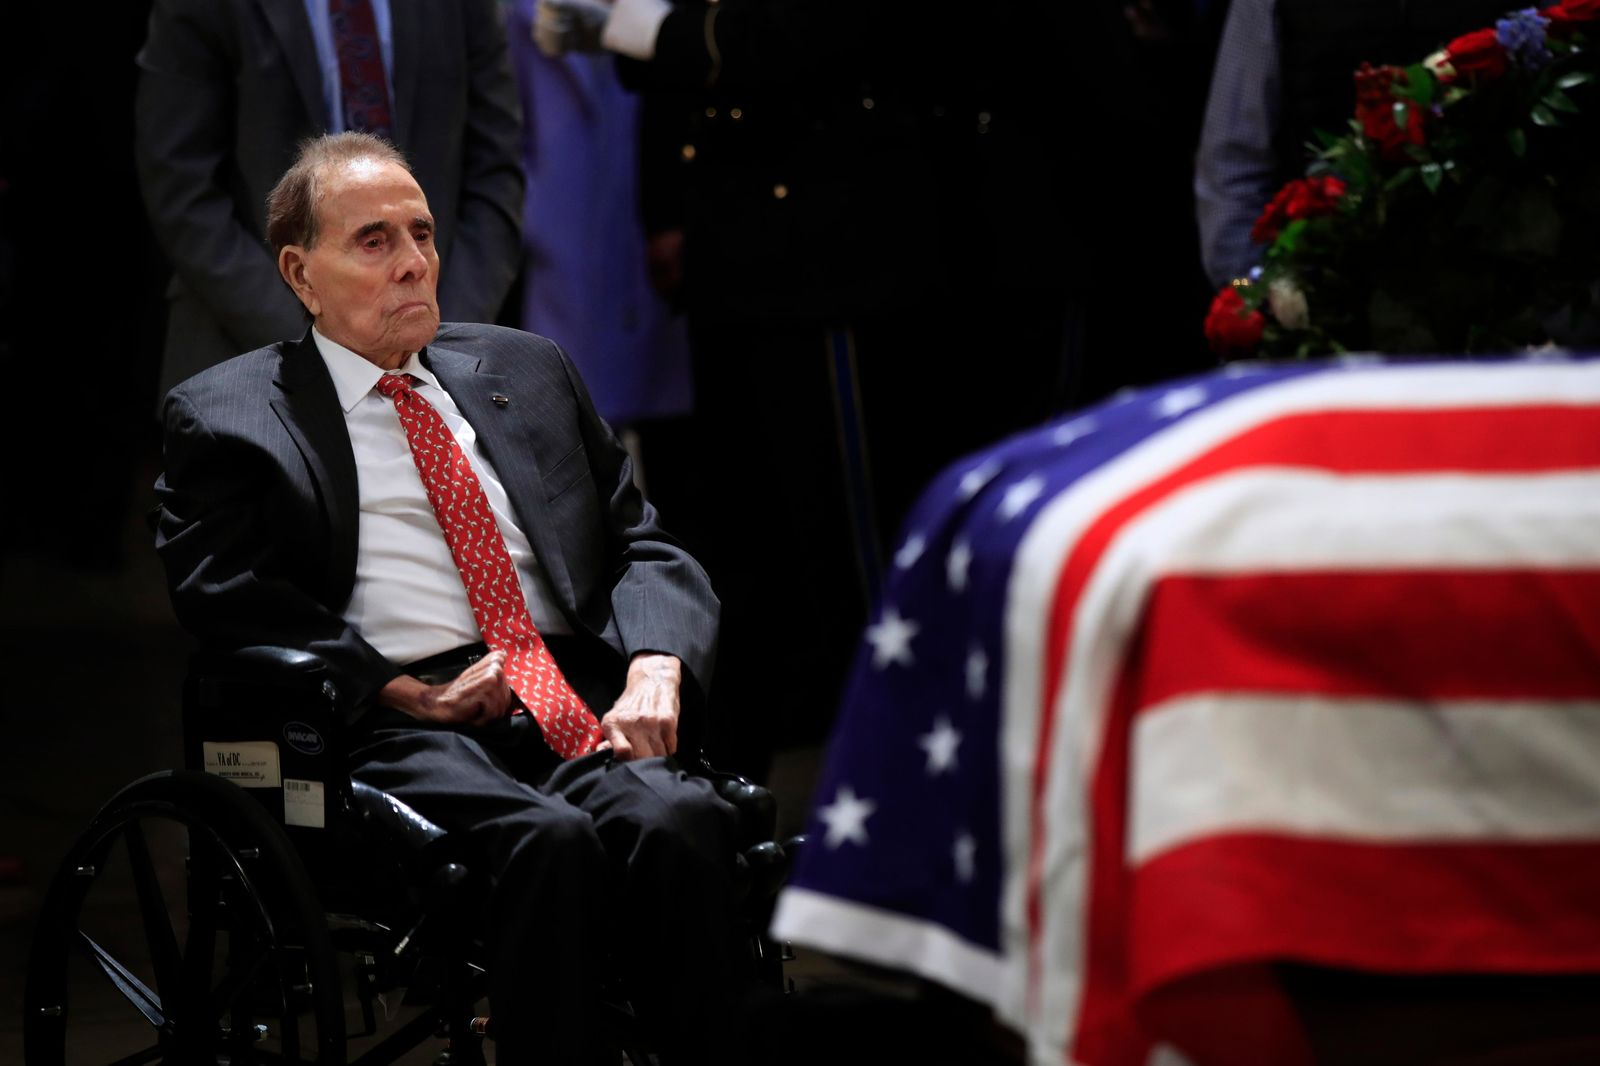 Former Sen. Bob Dole pays his last respects to former President George H.W. Bush as he lies in state at the U.S. Capitol in Washington, Tuesday, Dec. 4, 2018. (AP Photo/Manuel Balce Ceneta)